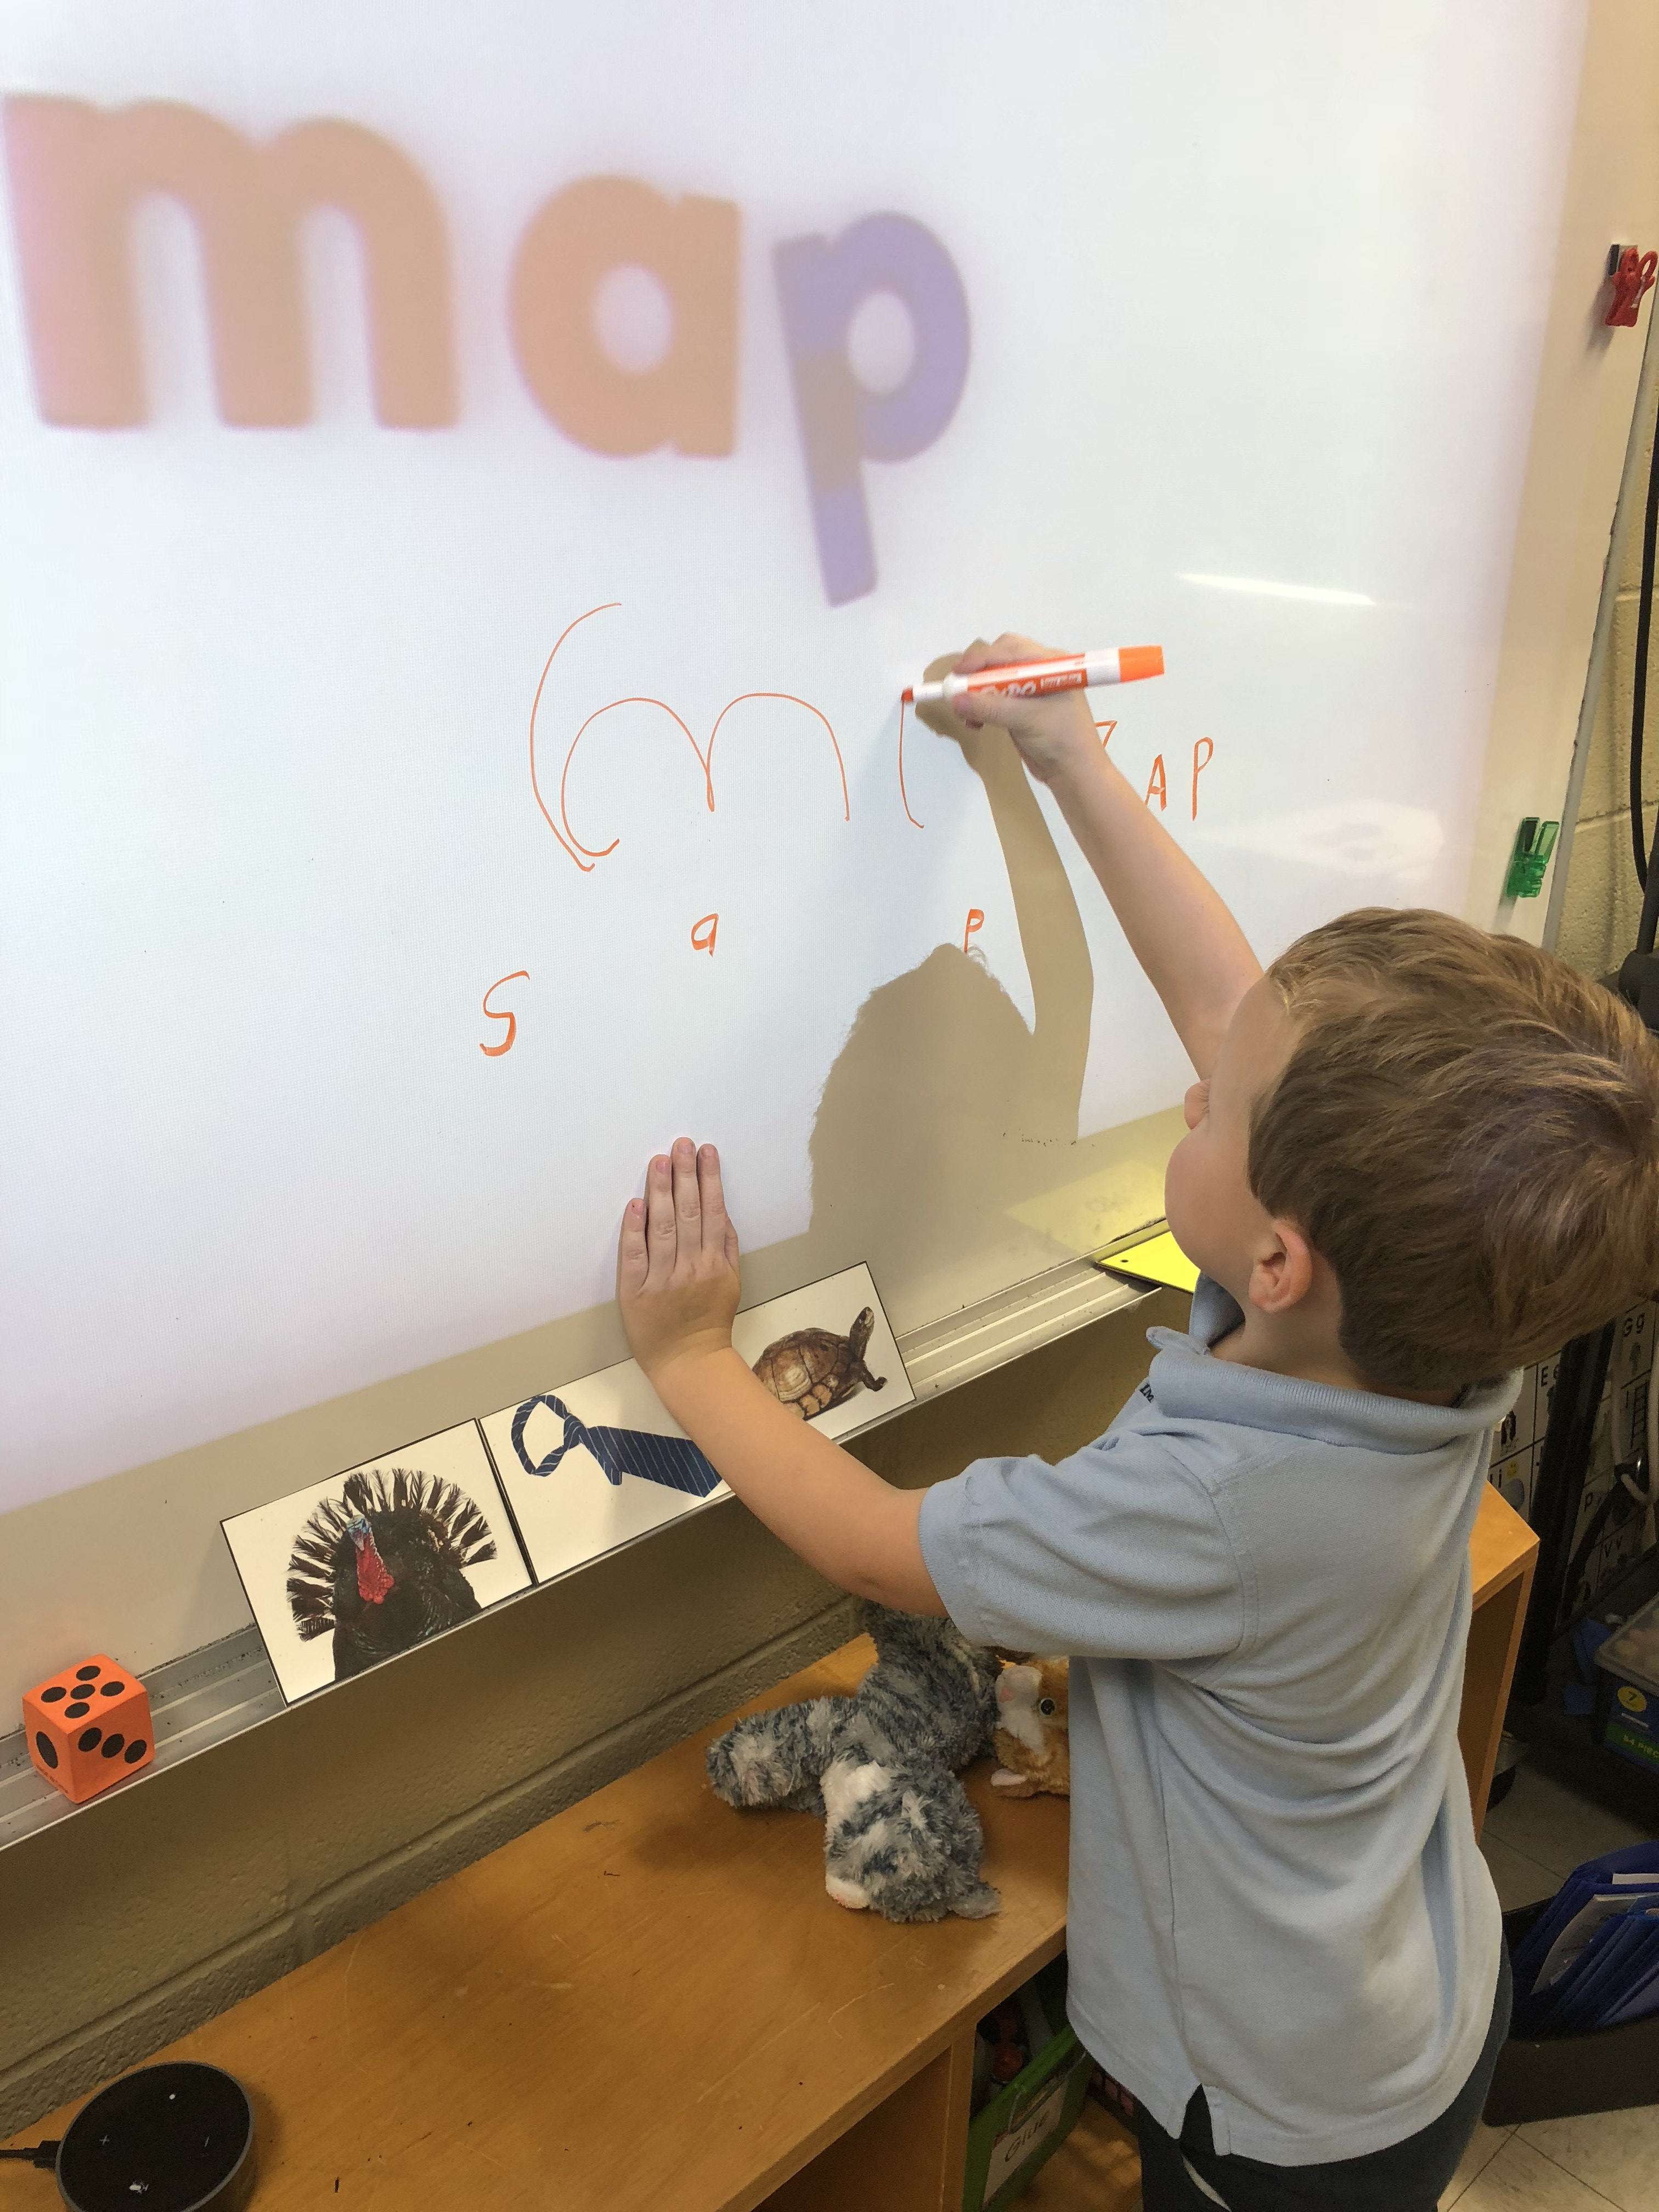 A little kid doing writing excersices